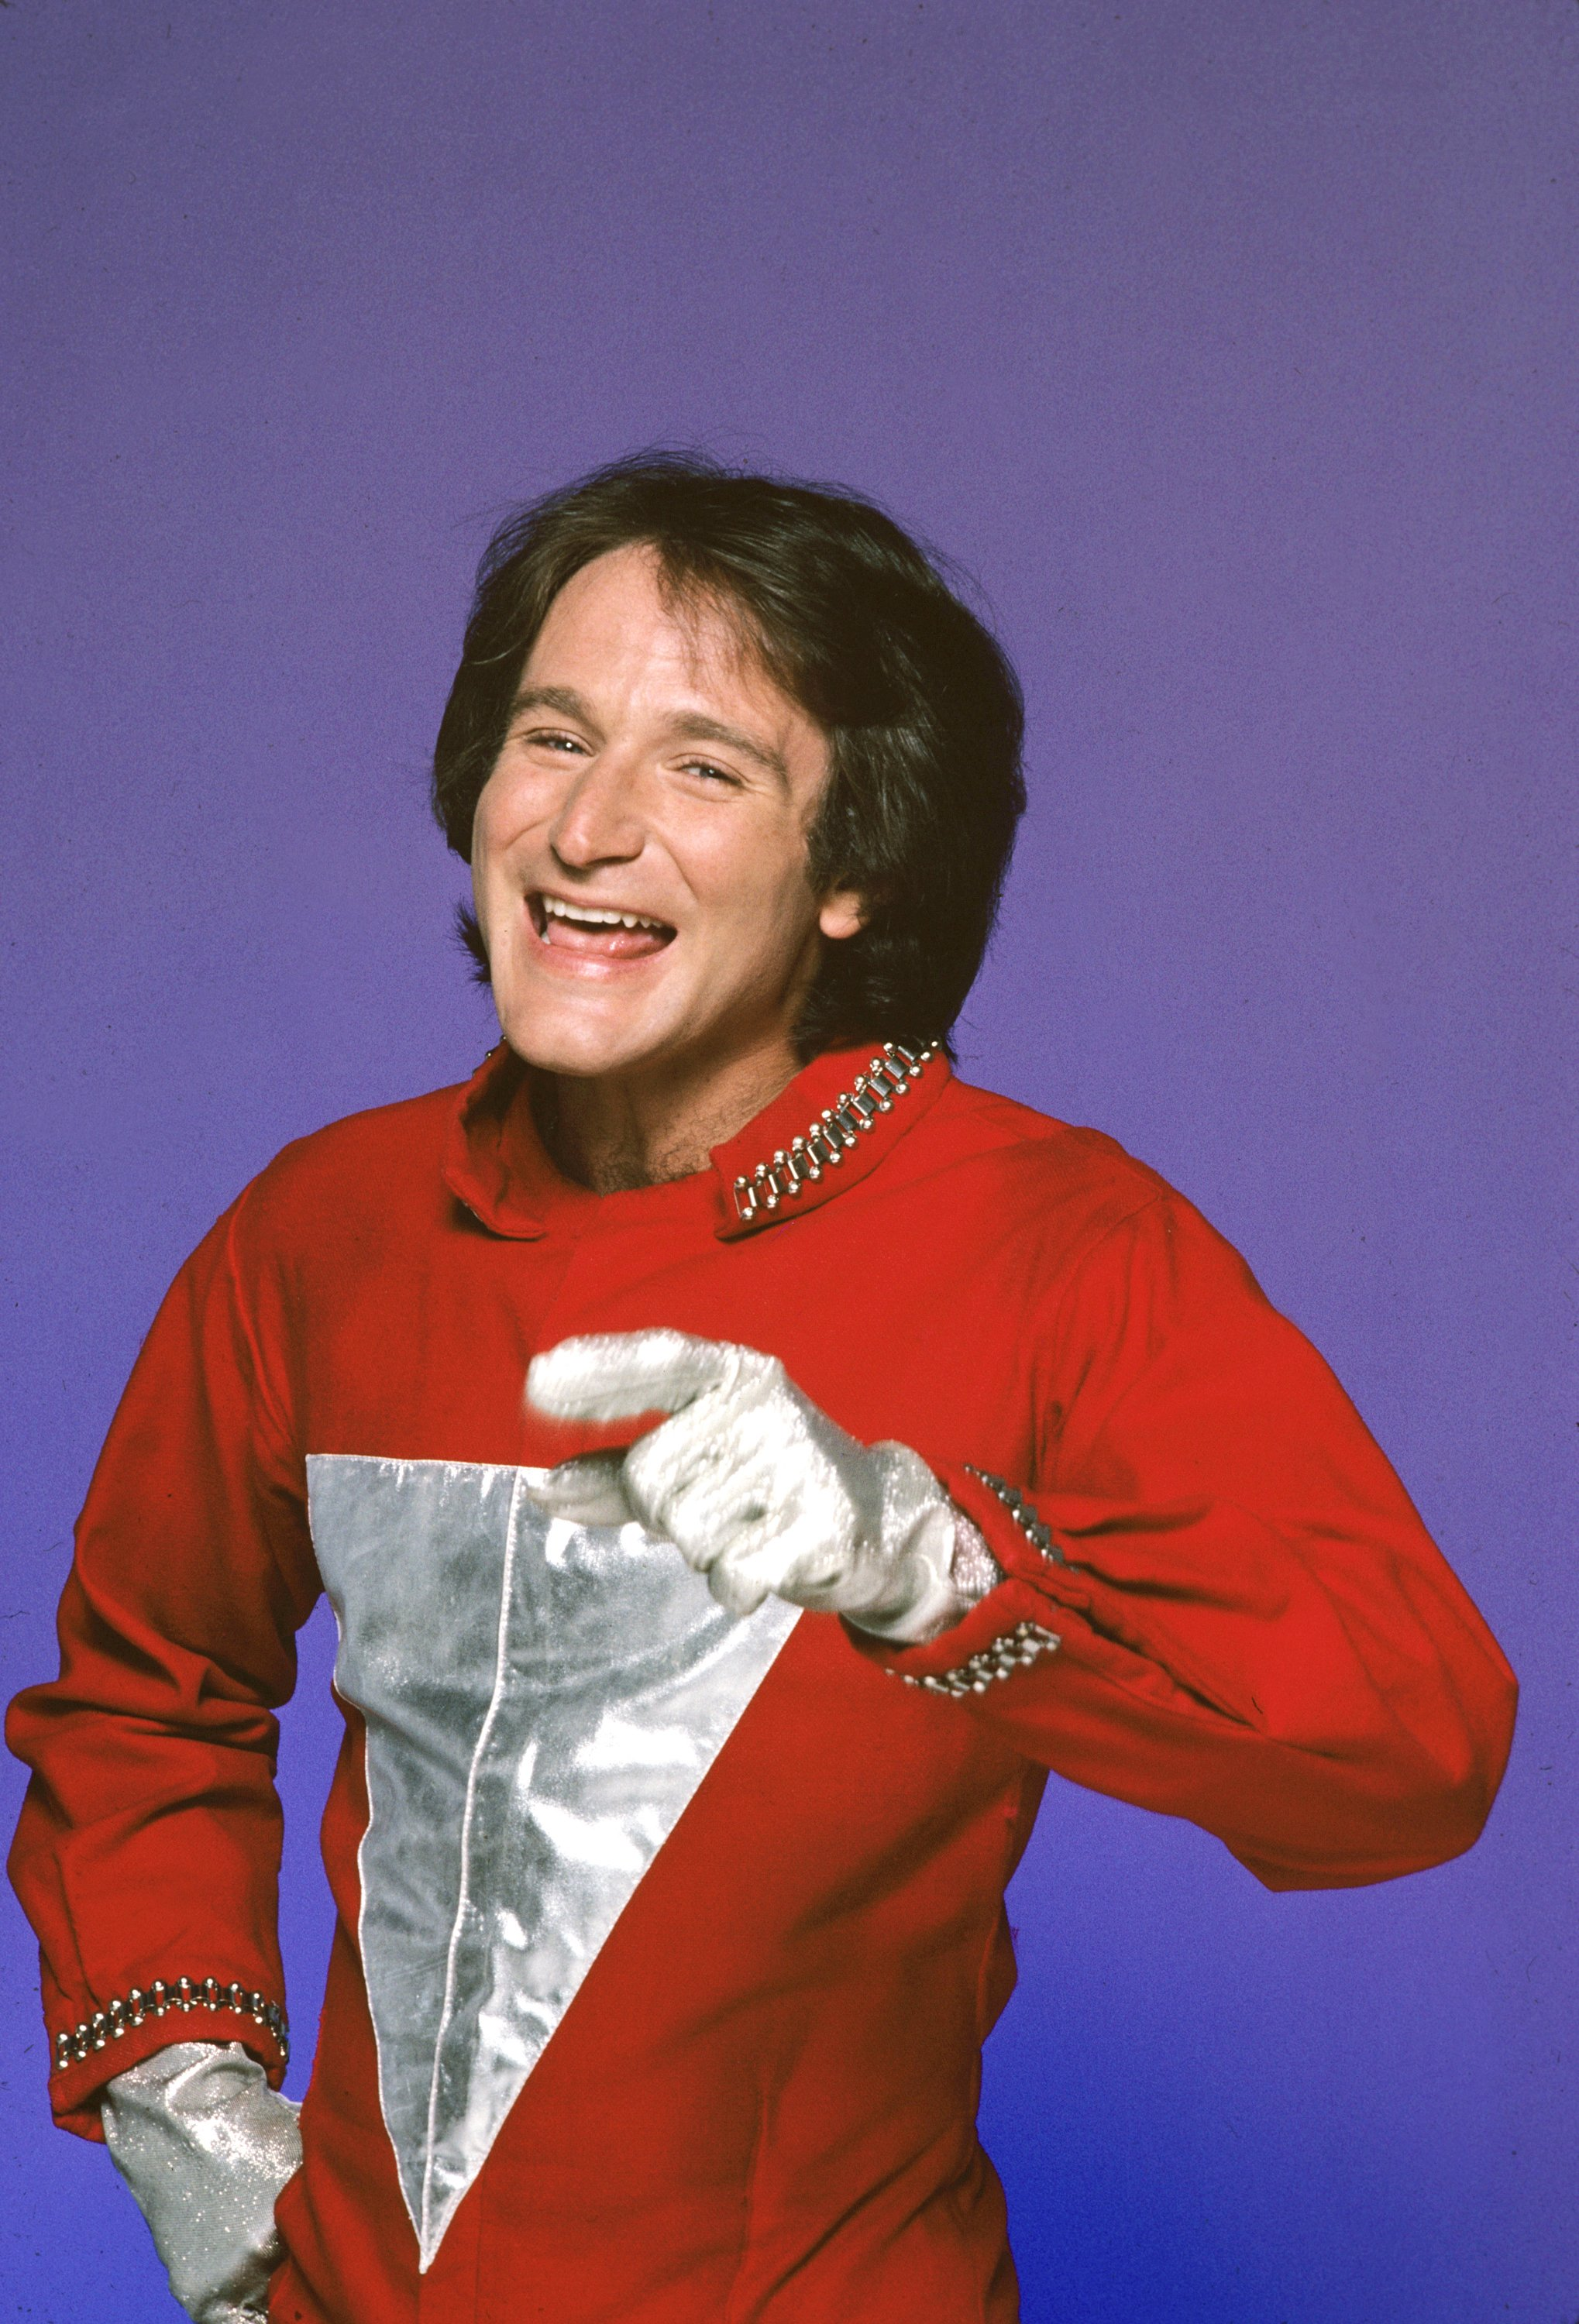 Image Credits: Getty Images / Jim Britt / Walt Disney Television | Actor and comedian Robin Williams.